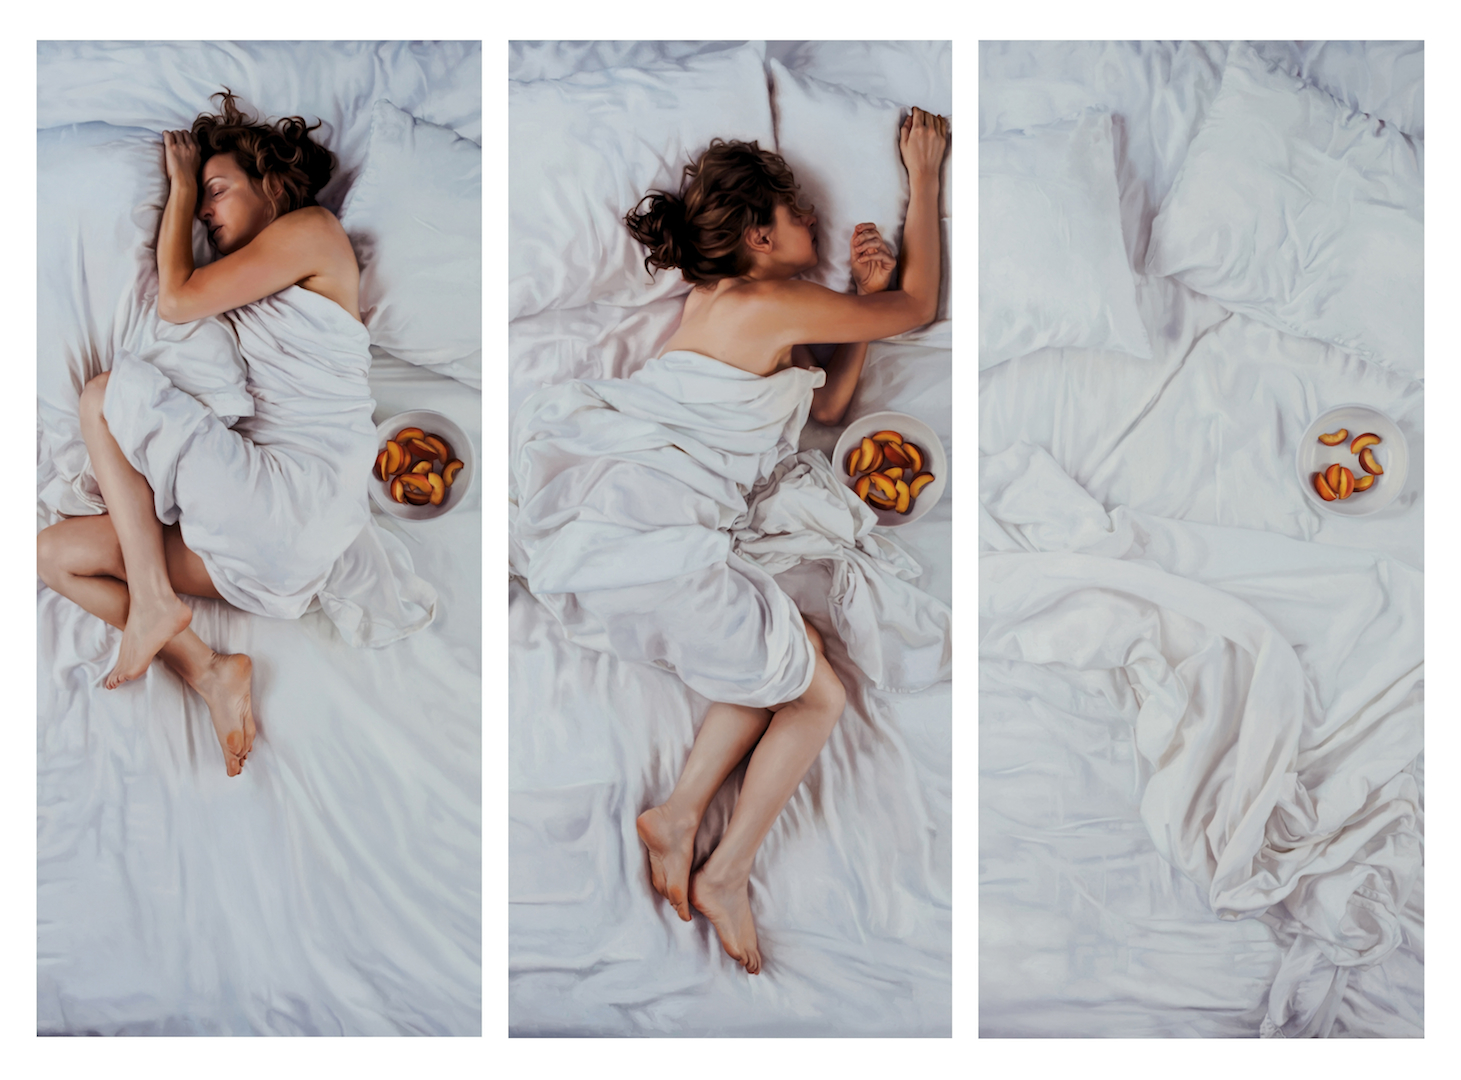 Lee Price, Sleeping with Peaches, 2011.